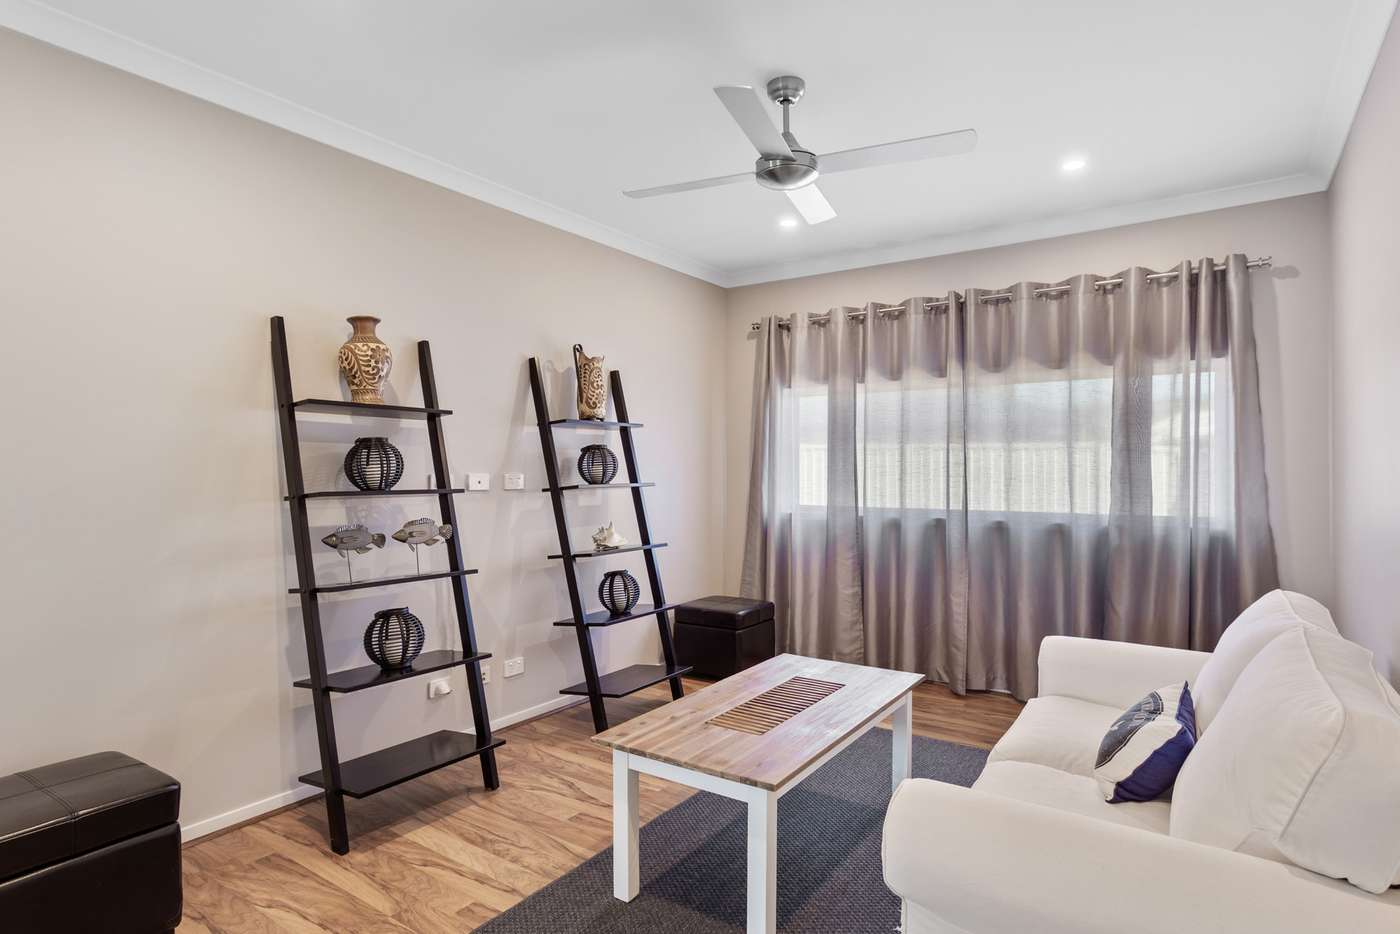 Sixth view of Homely house listing, 1 Seacrest Court, Banksia Beach QLD 4507